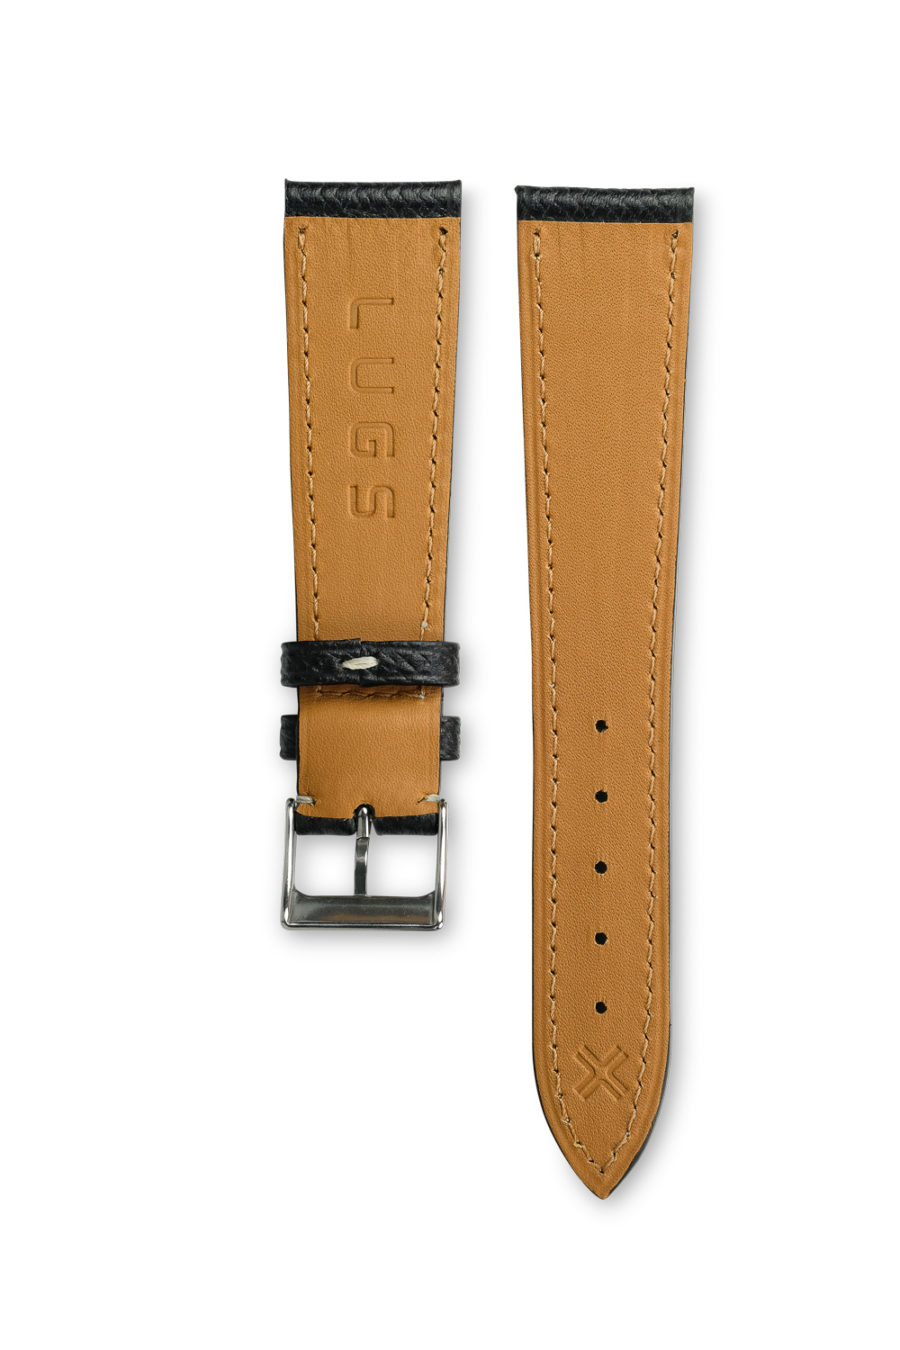 Grained Classic Barenia deep black leather watch strap - cream stitching - LUGS brand